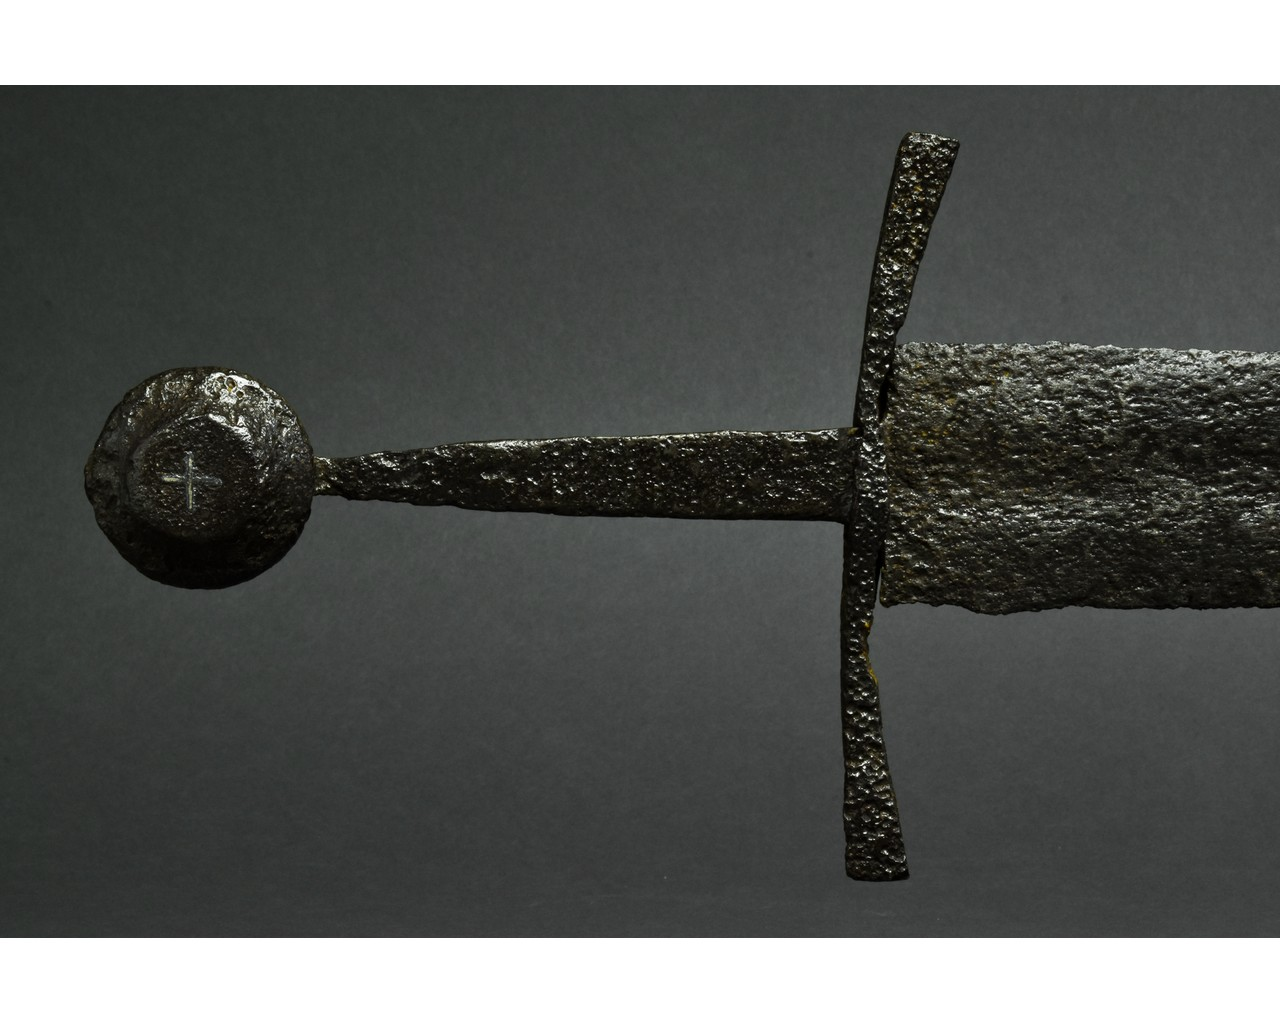 MEDIEVAL IRON SWORD WITH INLAID CROSS - Image 4 of 6